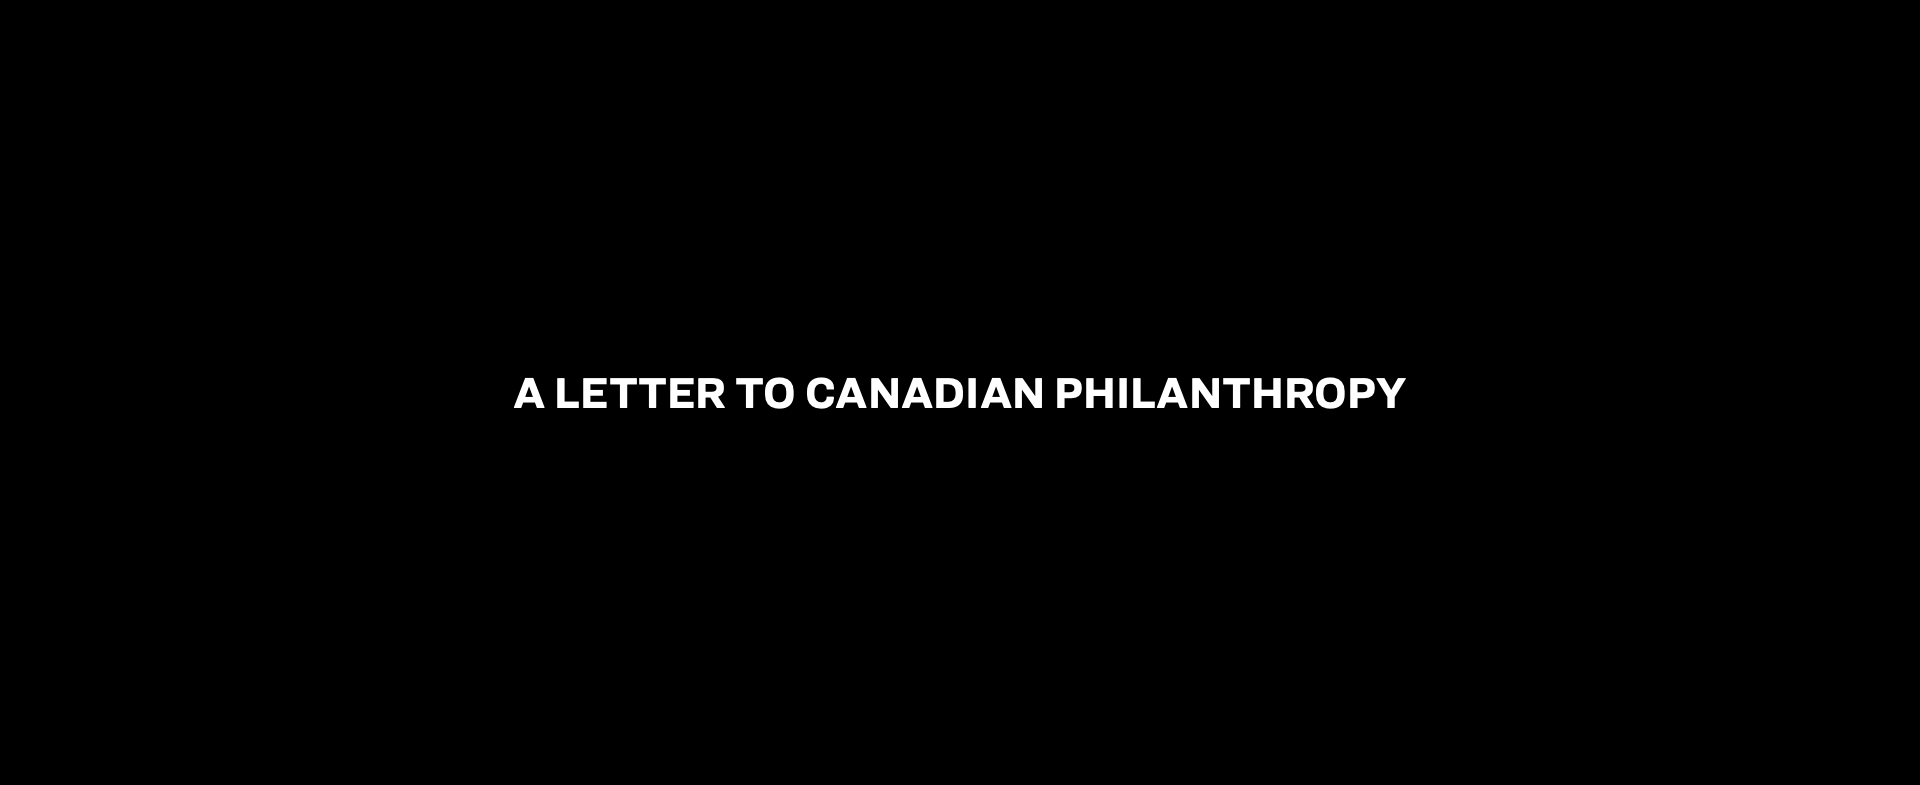 A Letter to Canadian Philanthropy